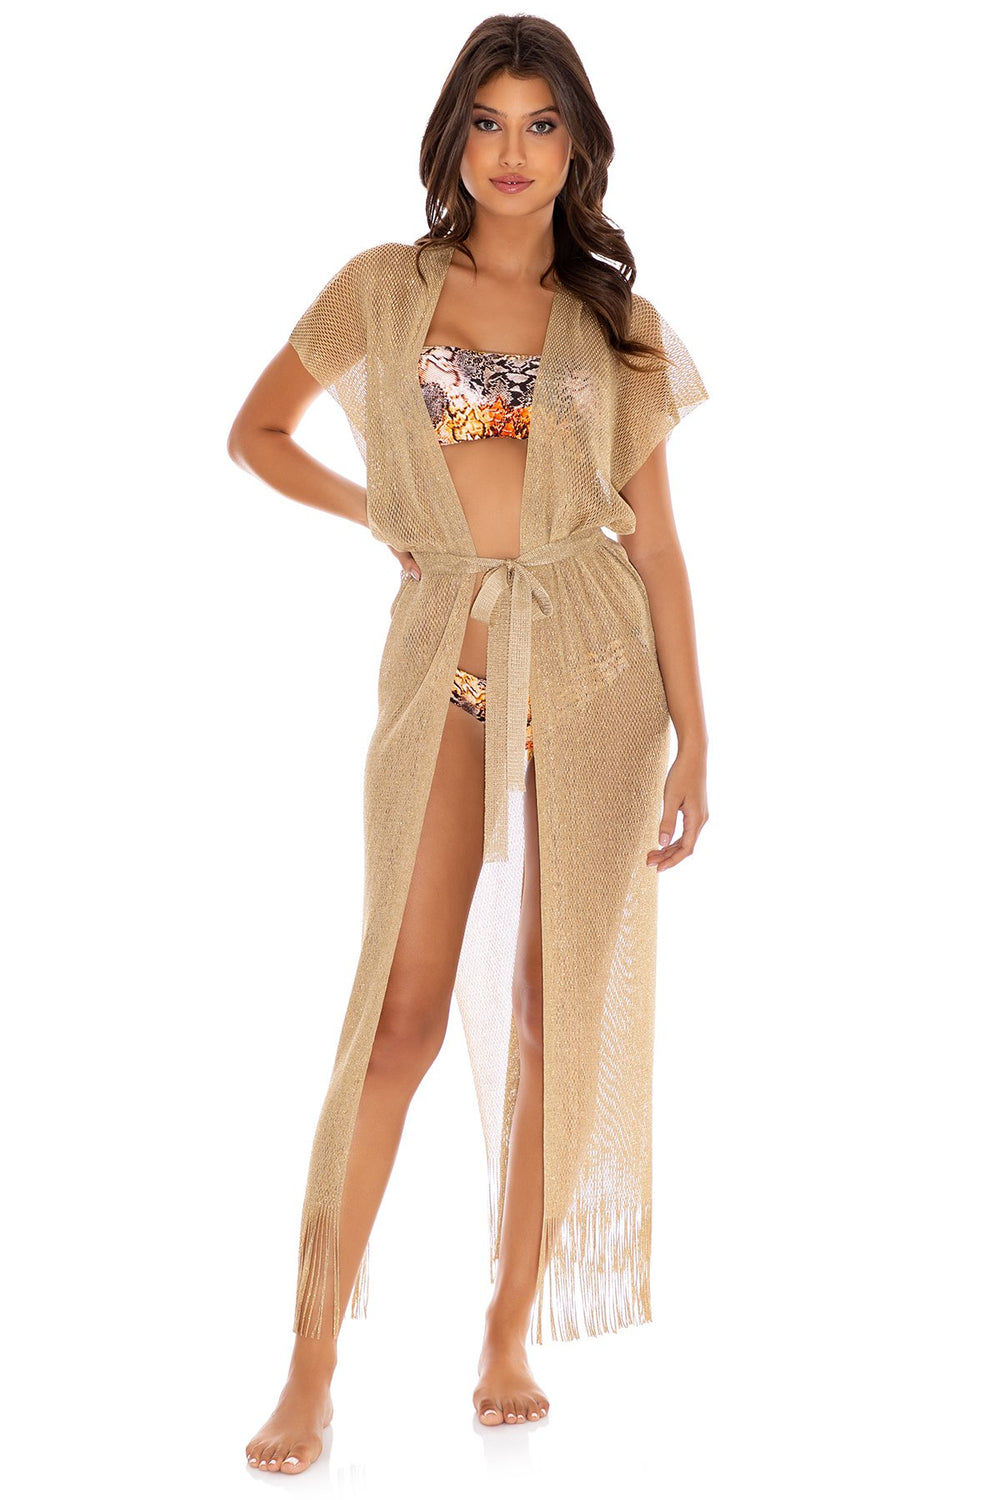 GOLDEN QUEEN - Long Caftan • Gold Rush